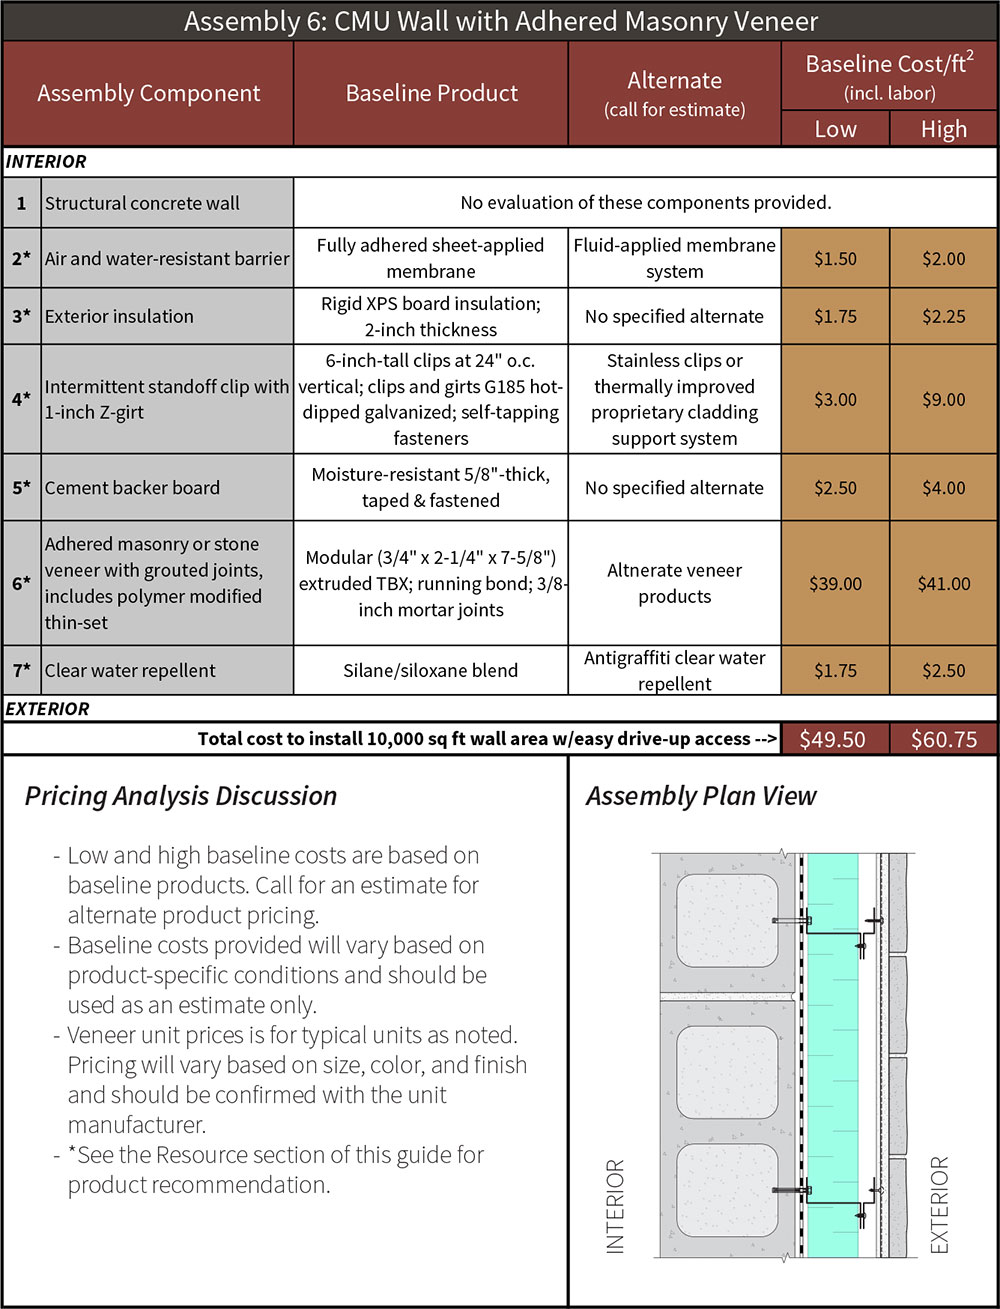 Table 6-4 Assembly 6 CMU wall with adhered masonry veneer pricing analysis.